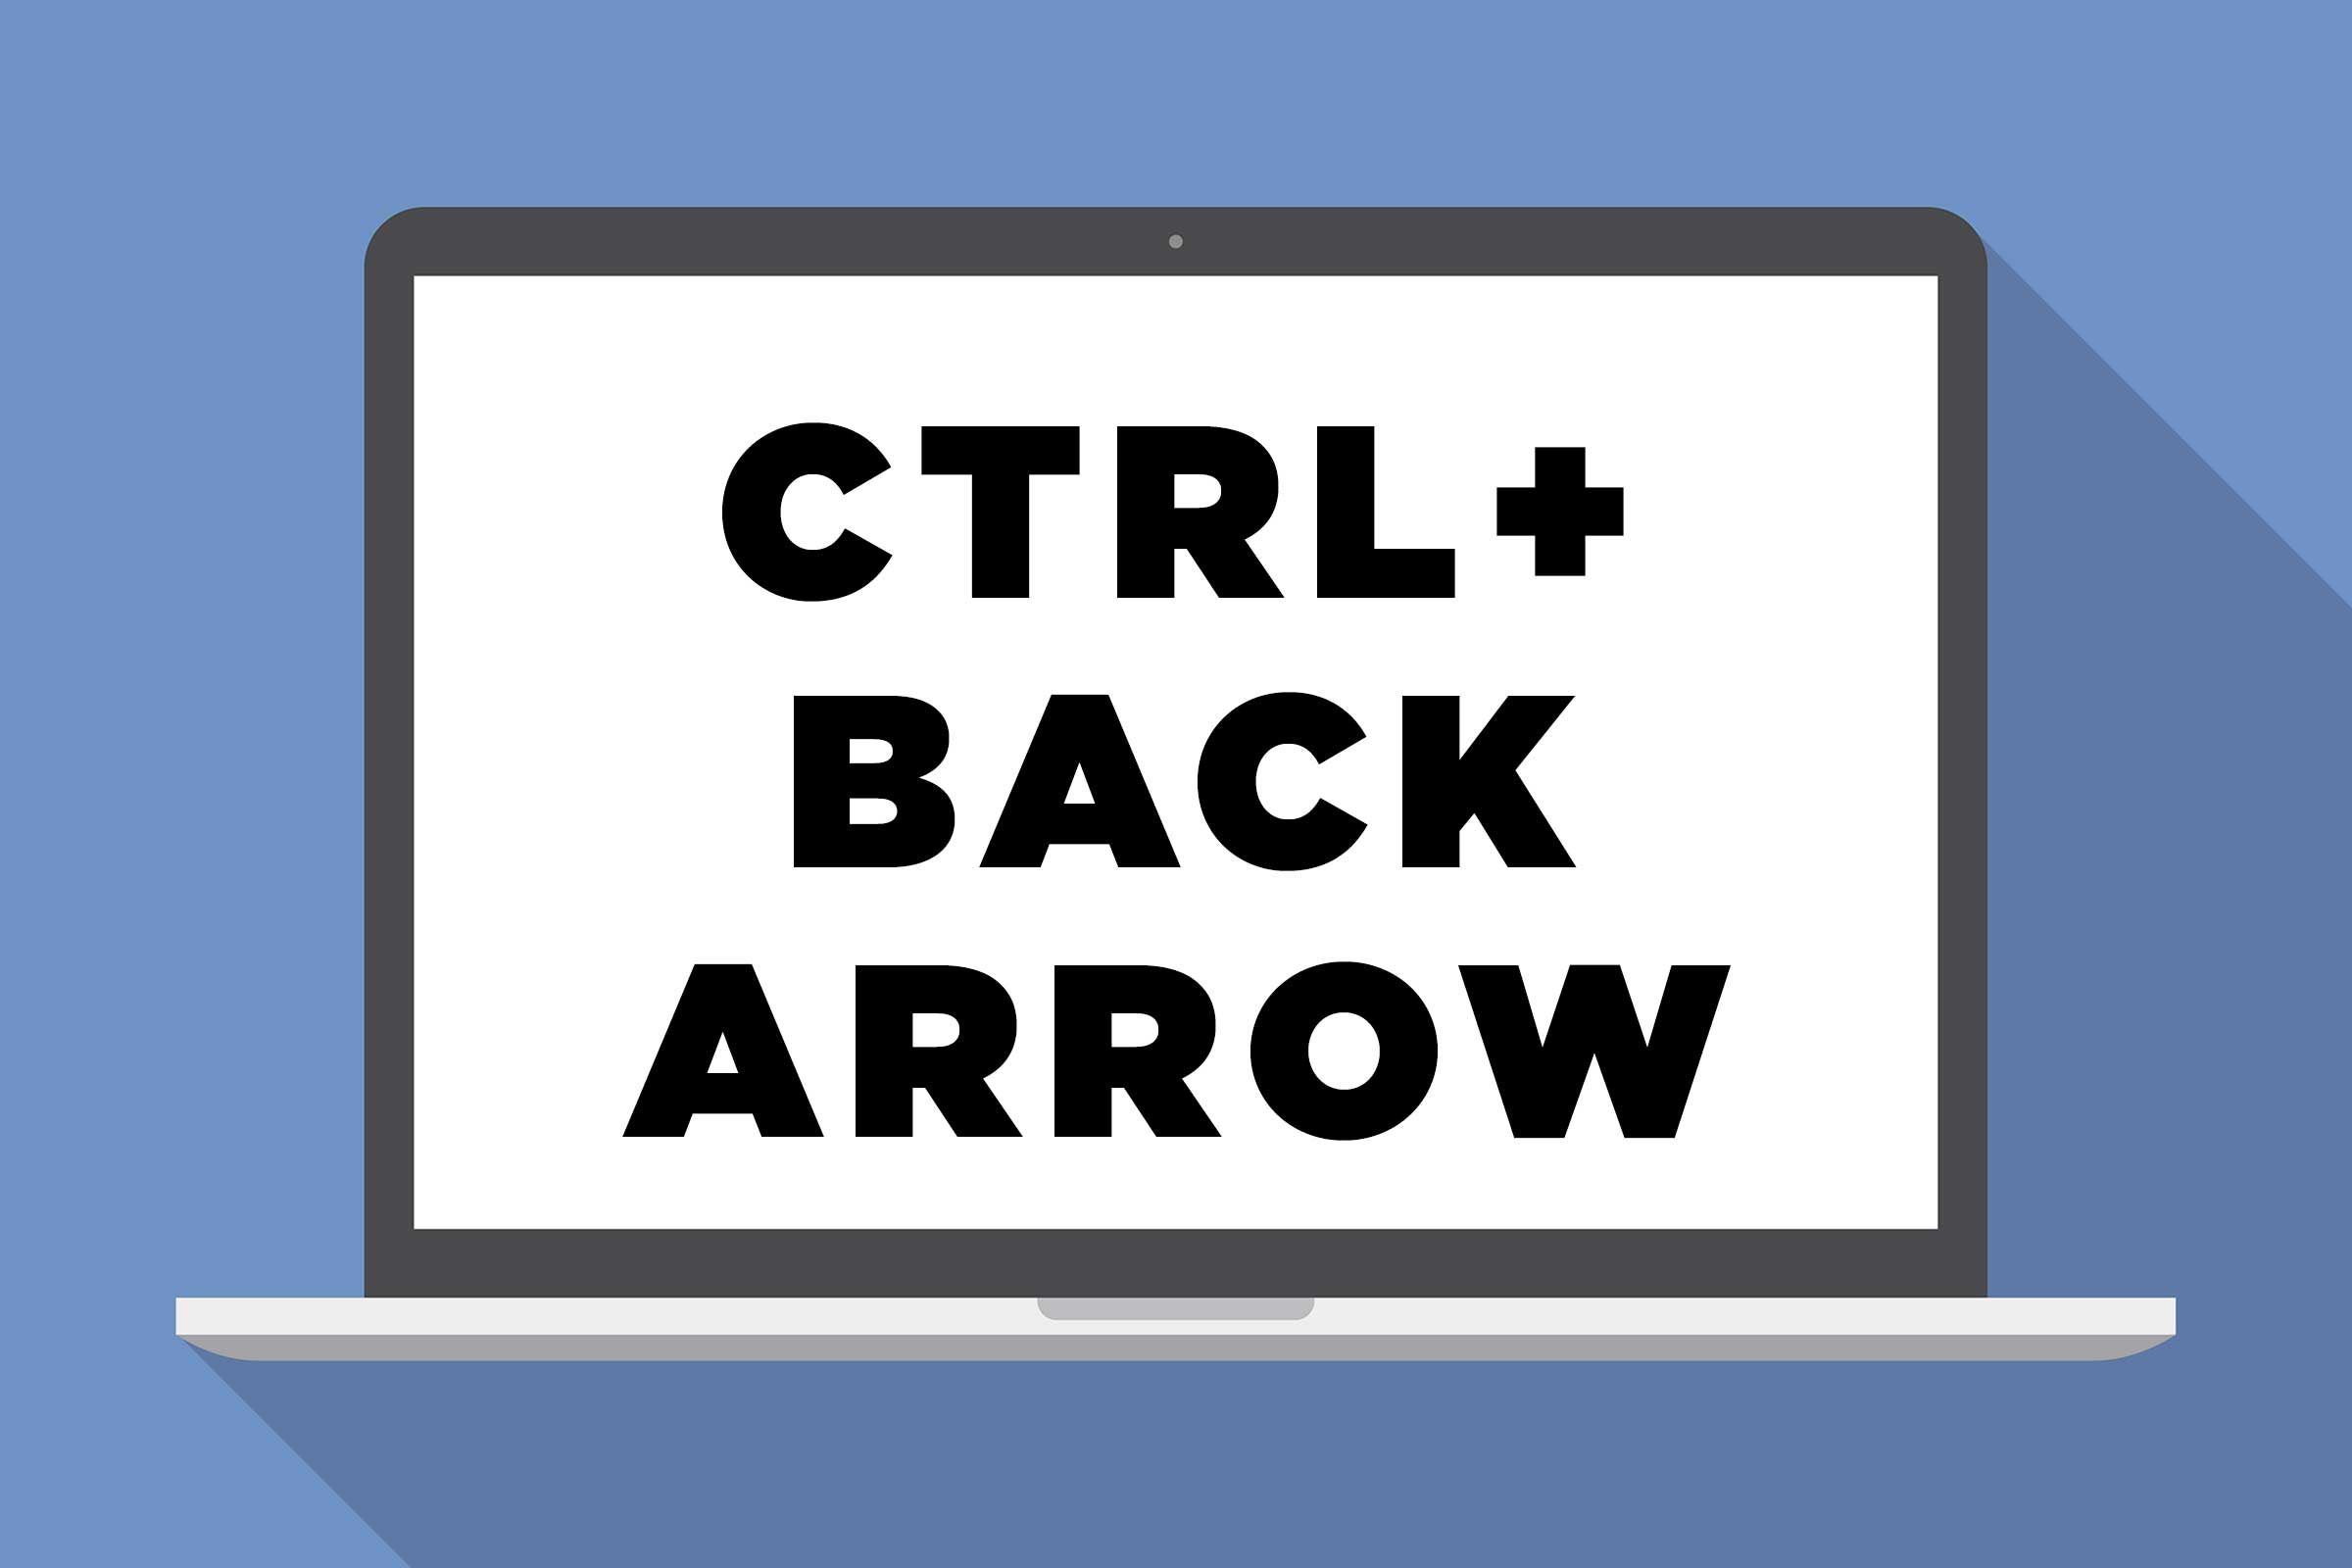 CTRL + back arrow: Go back one page in your browsing history